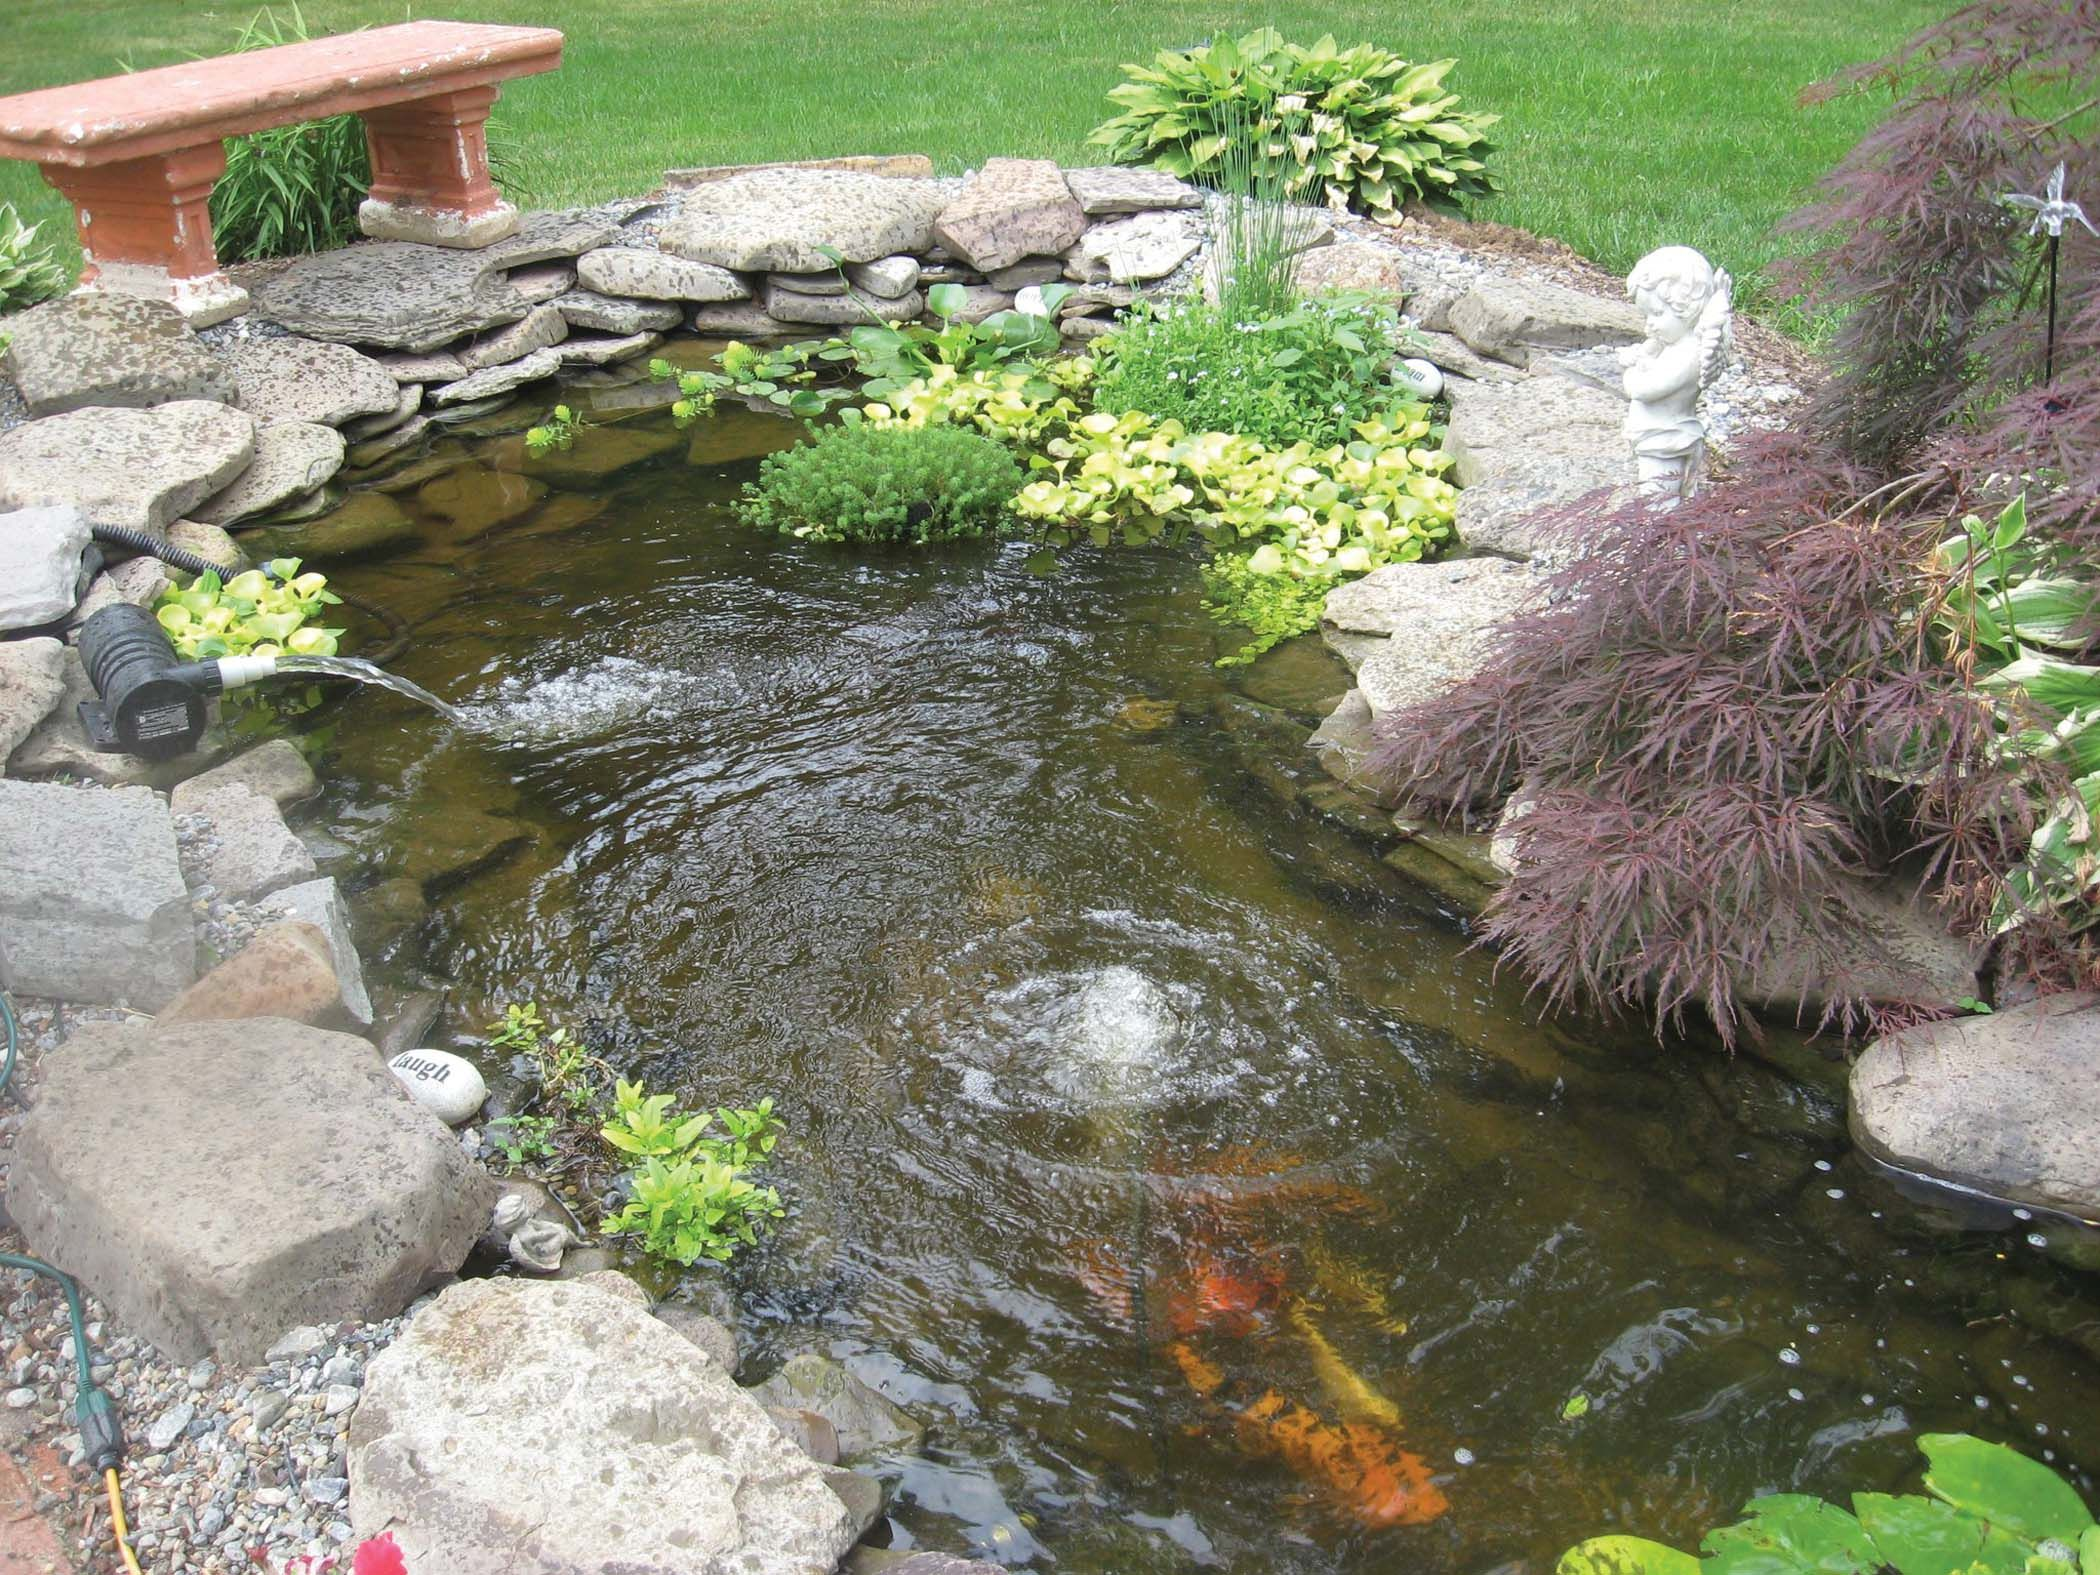 17 Best ideas about Pond Kits on Pinterest Koi pond kits Diy